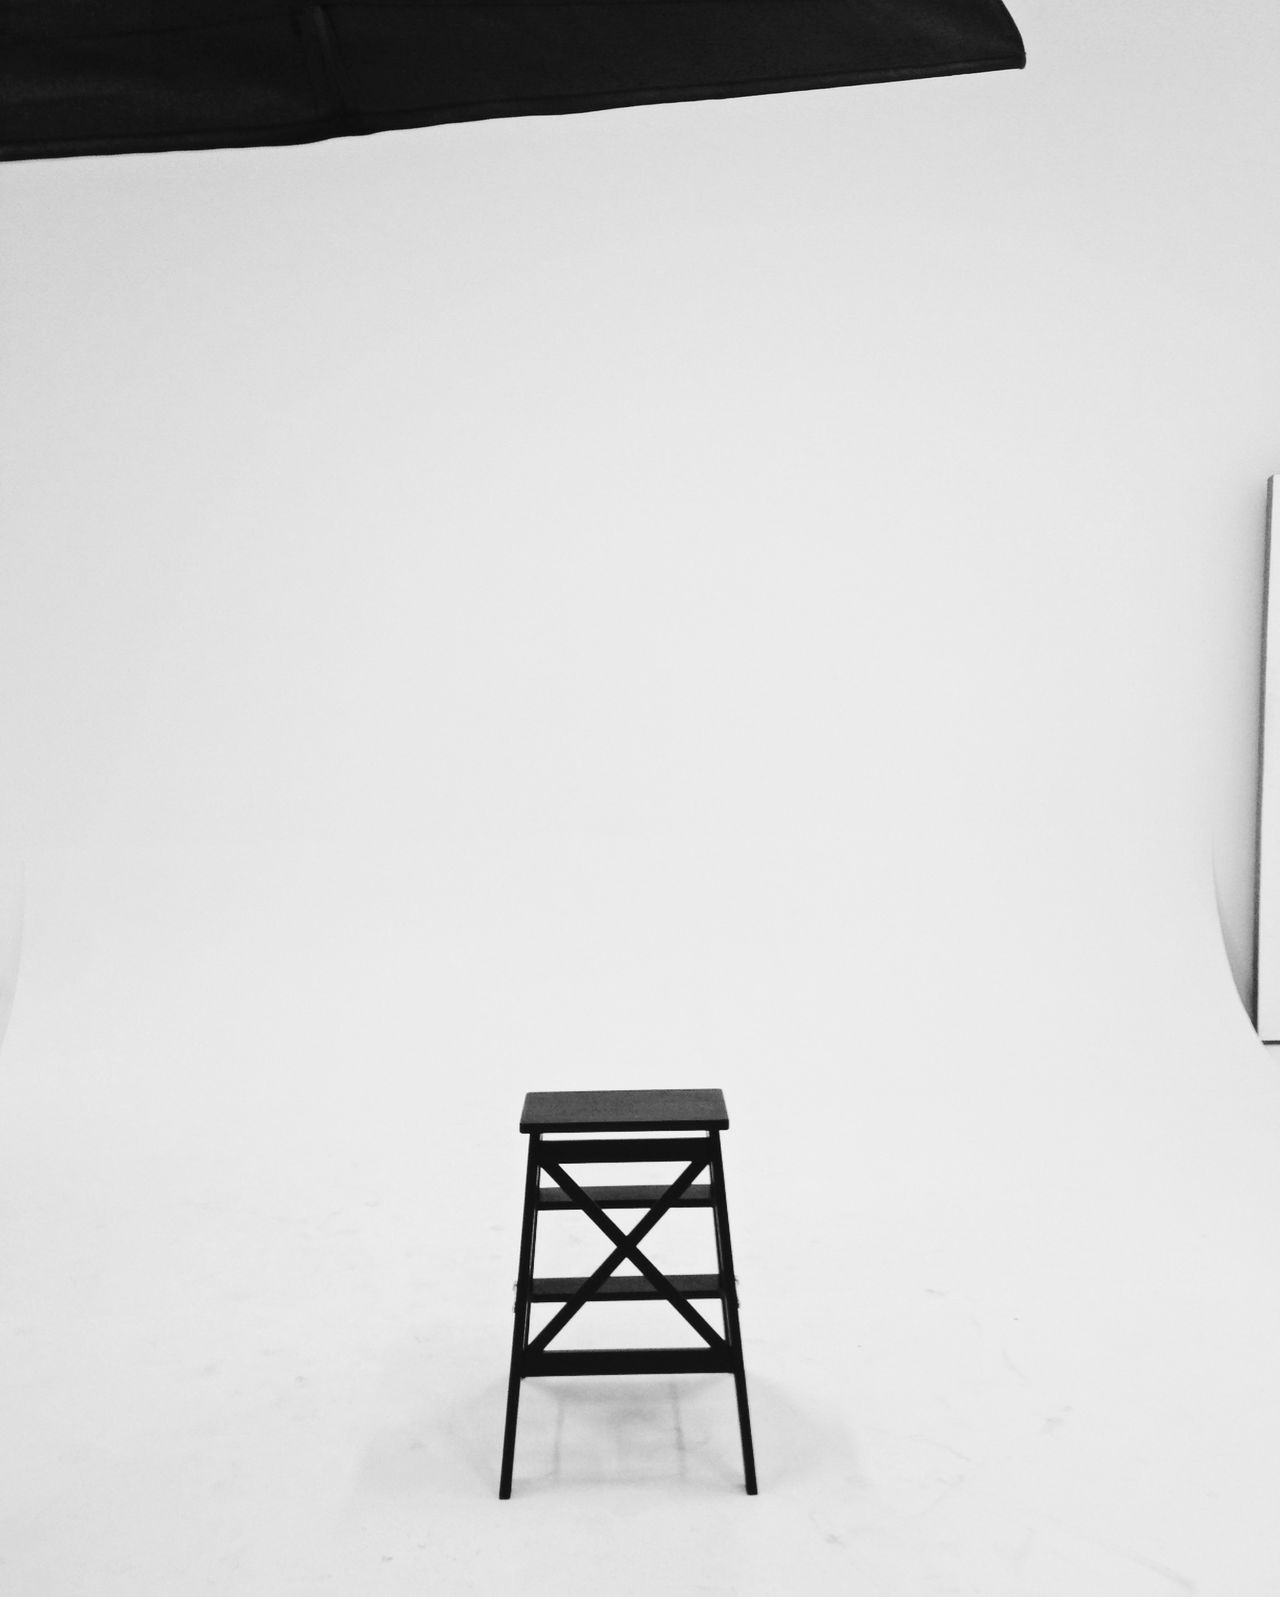 black chair in the studio No People Indoors  Blackandwhite White Background Monochrome Studio Shot Copy Space Photography Interior Design Chair